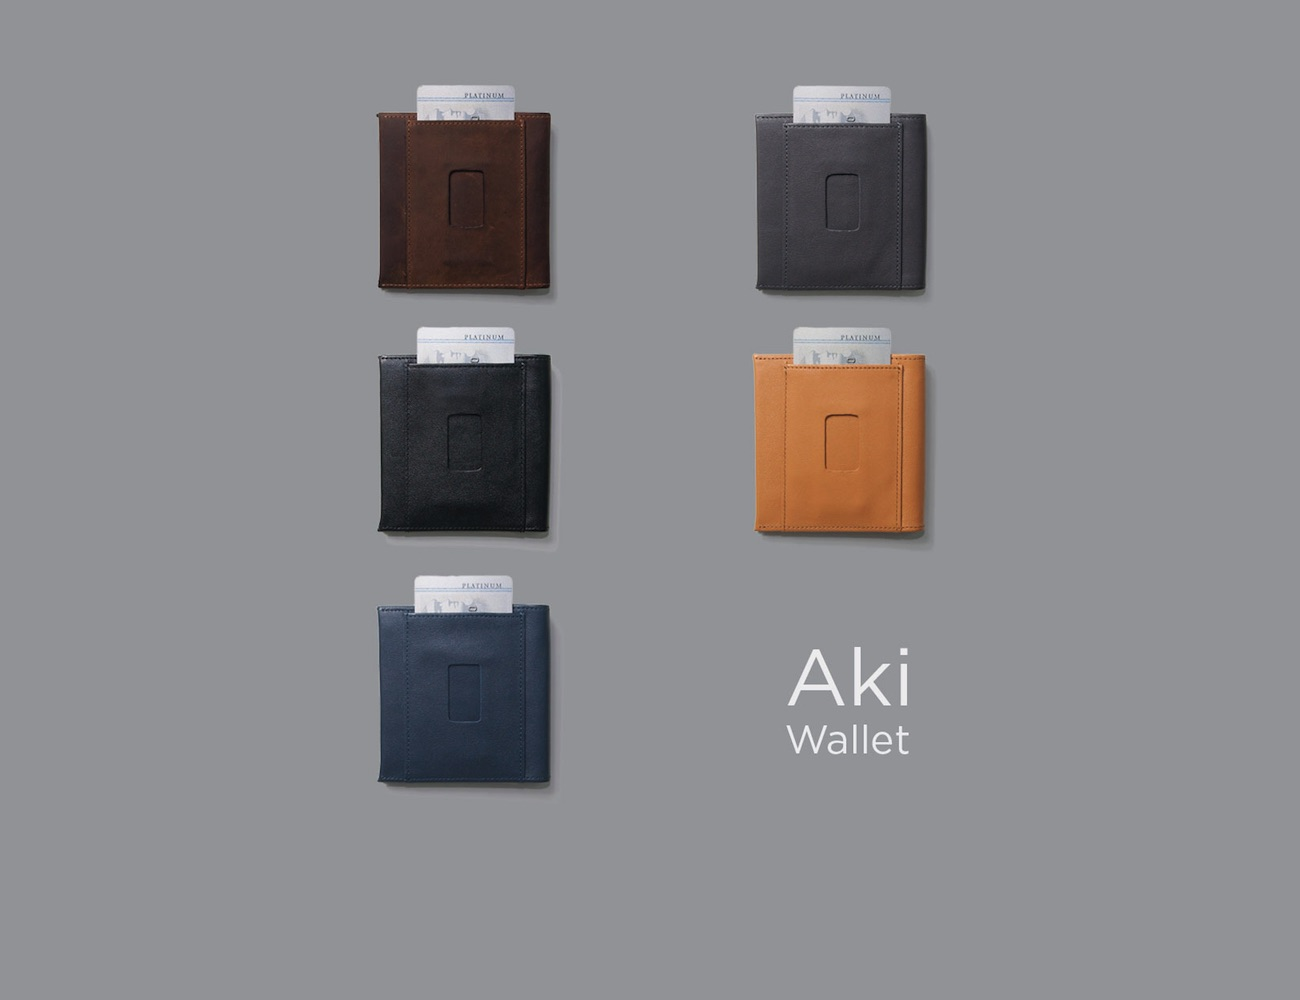 aki-wallet-the-ultimate-minimalist-bifold-wallet-07